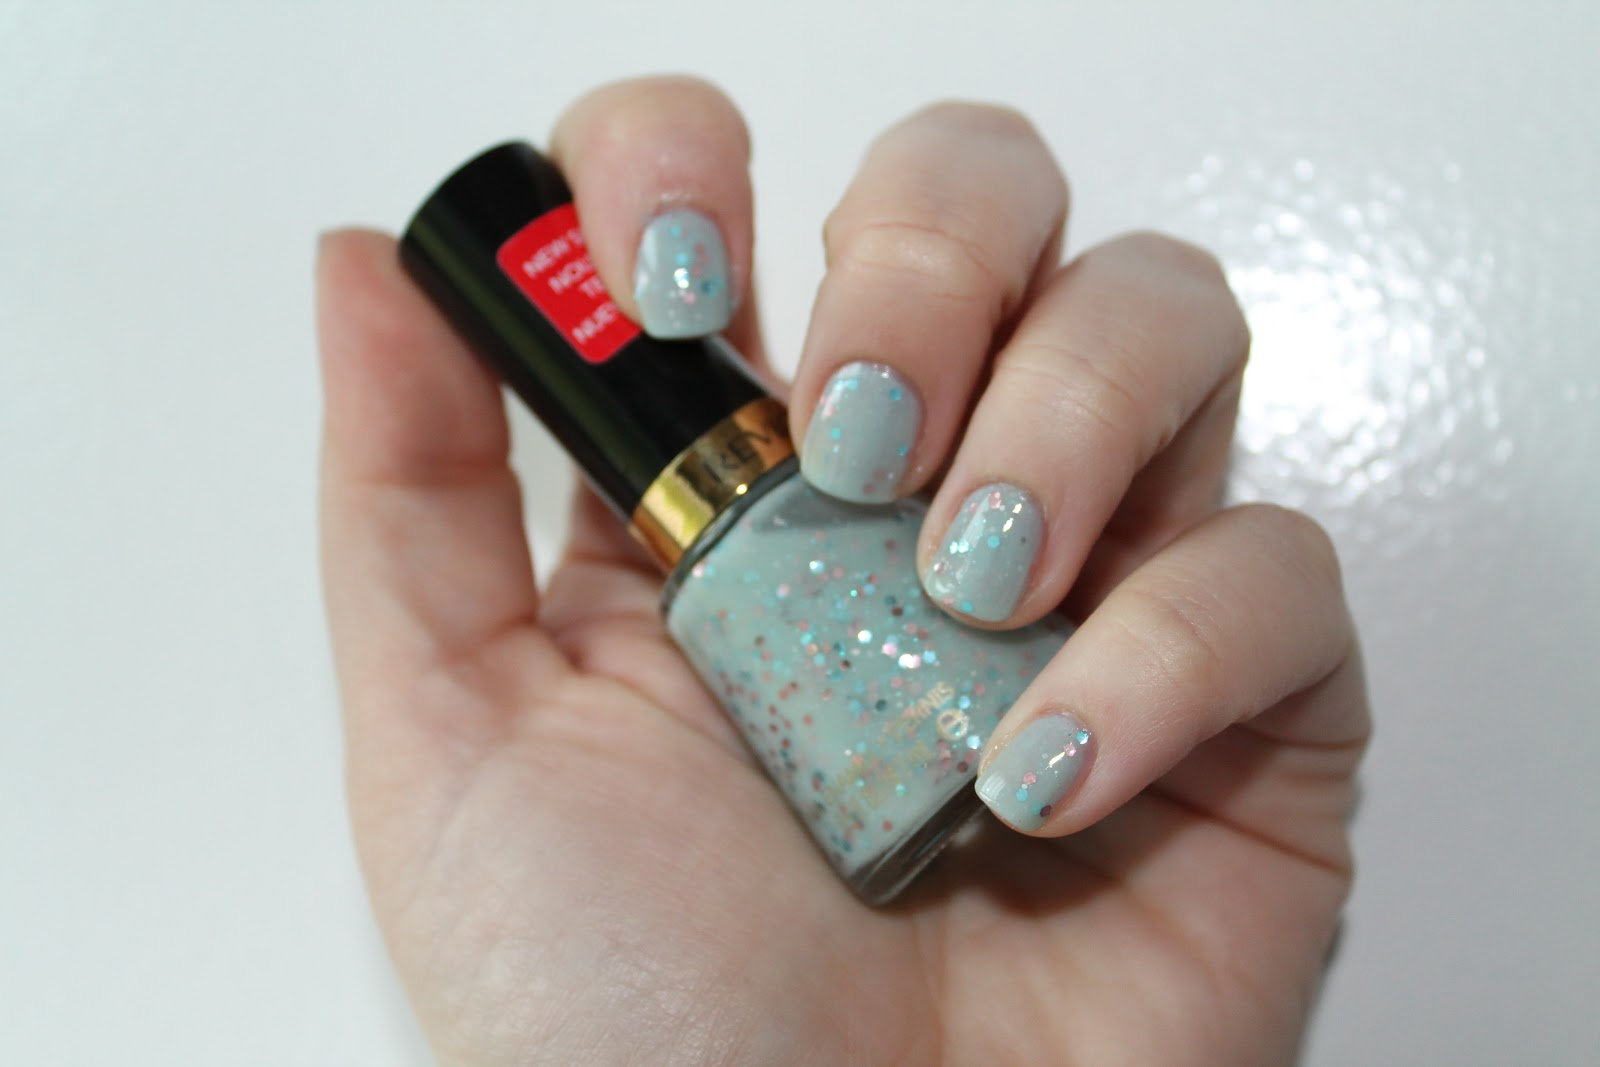 At the Pink of Perfection: #ManiMonday: Revlon Whimsical